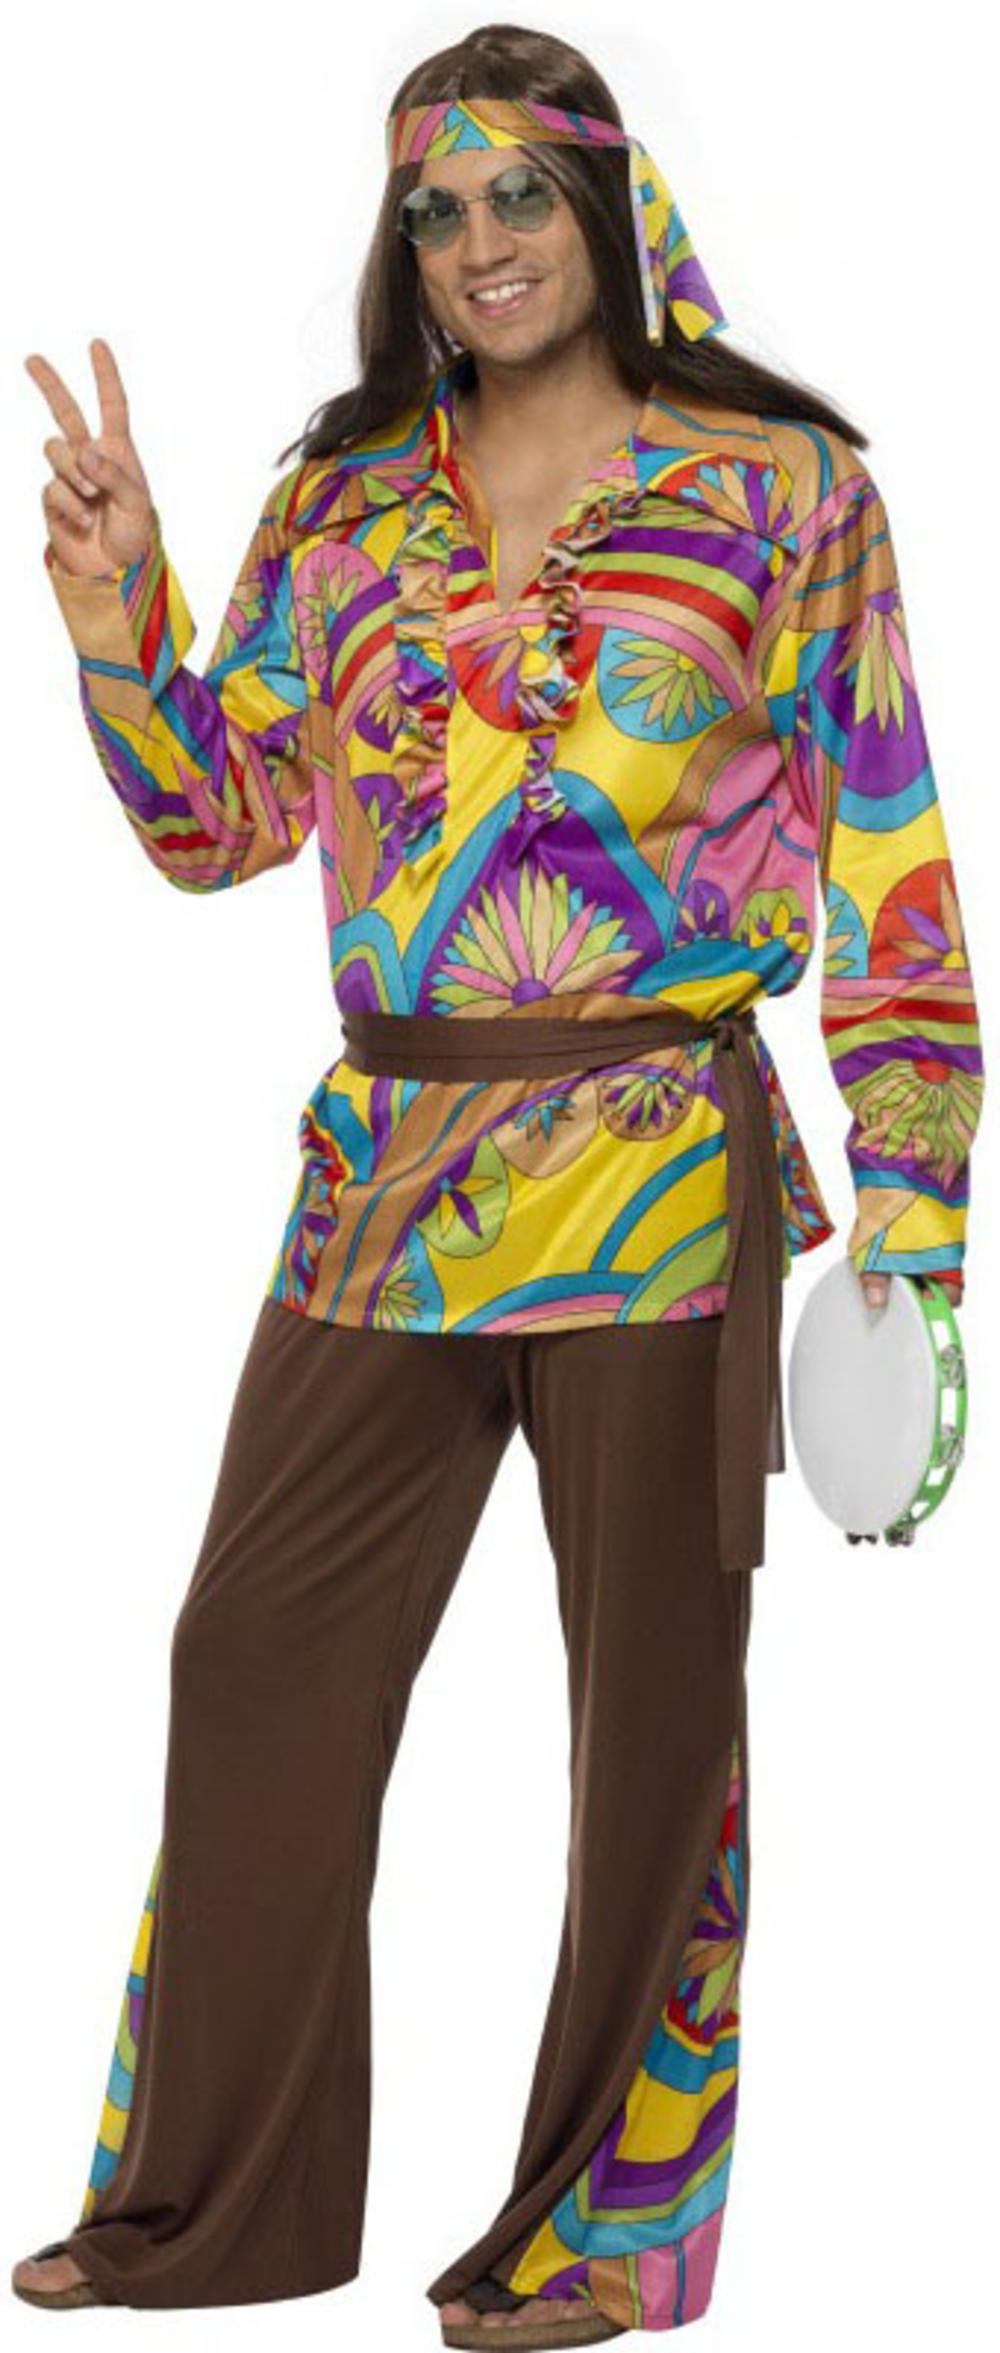 Groovy Hippie Mens Fancy Dress 60s 70s Psychedelic Hippy Adults Costume Outfit